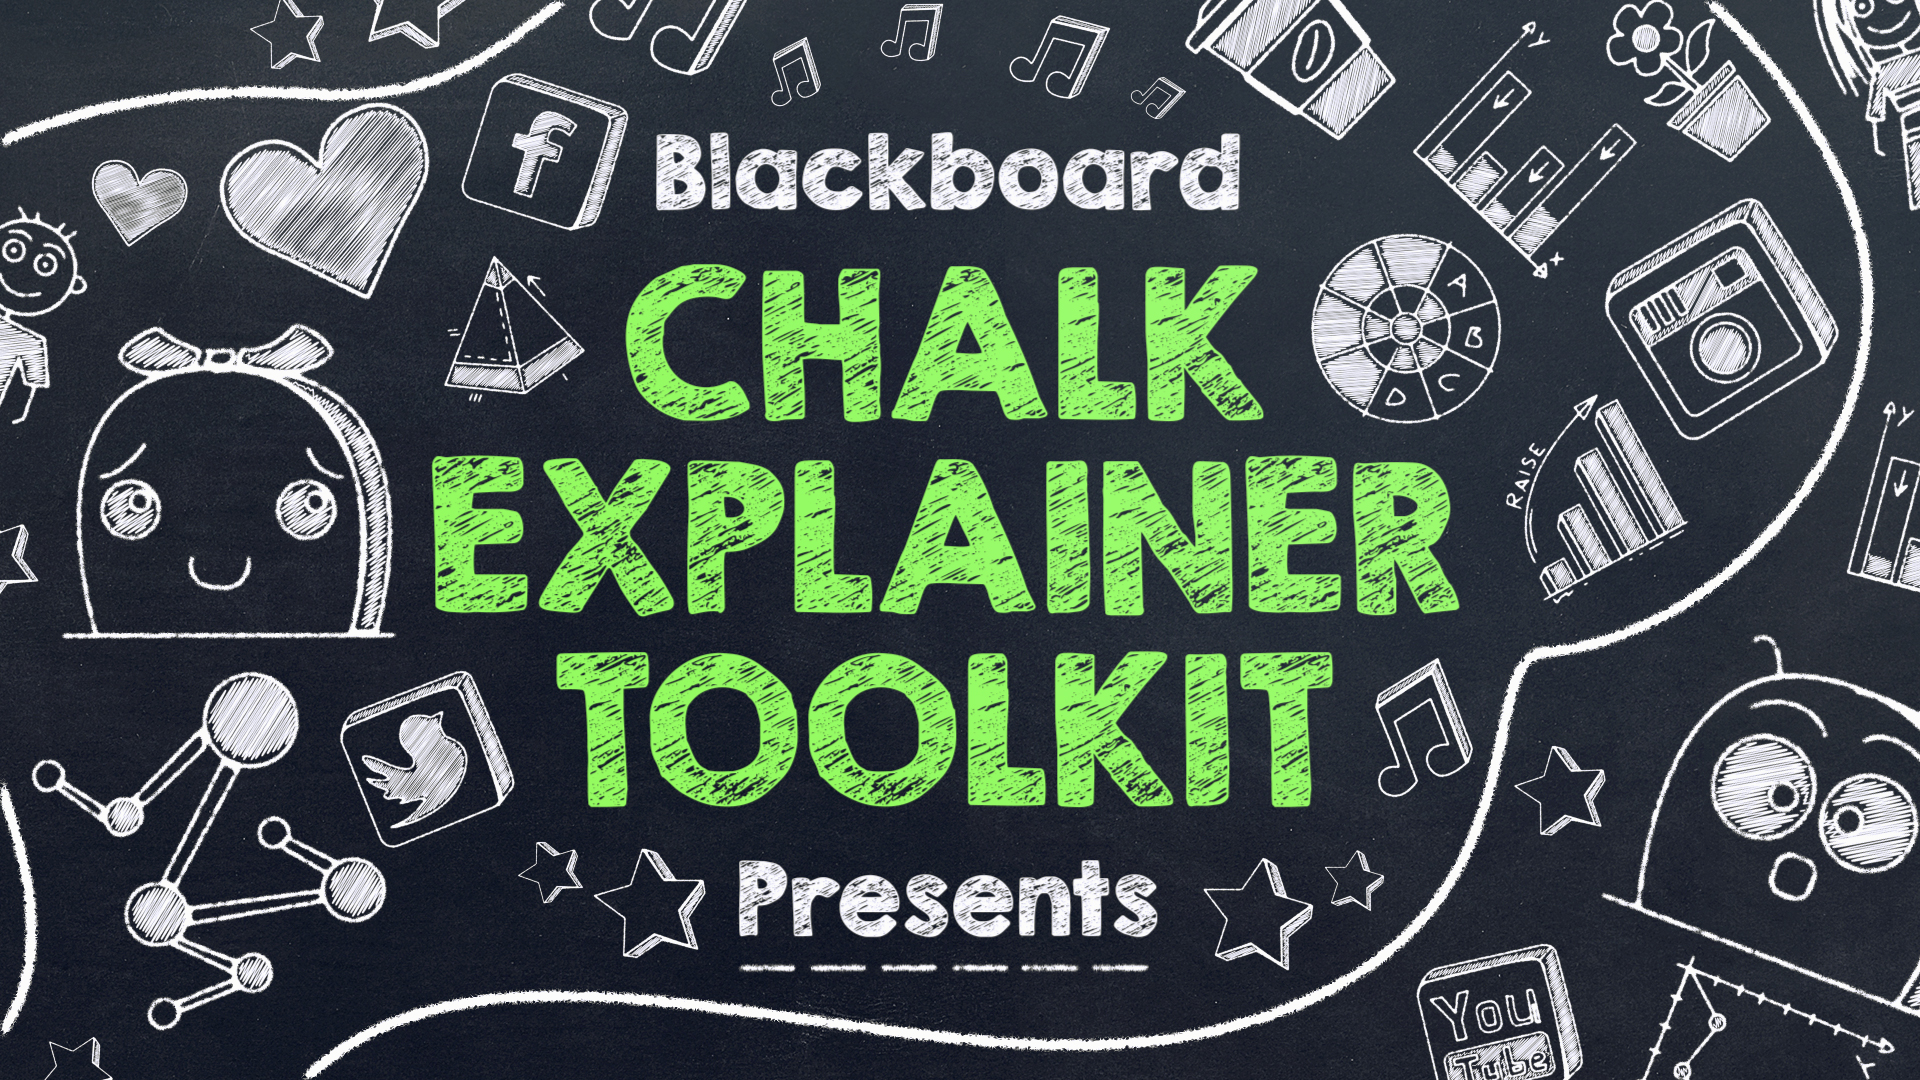 Blackboard_Chalk_Explainer_Toolkit_Preview_Template_1080p_00389